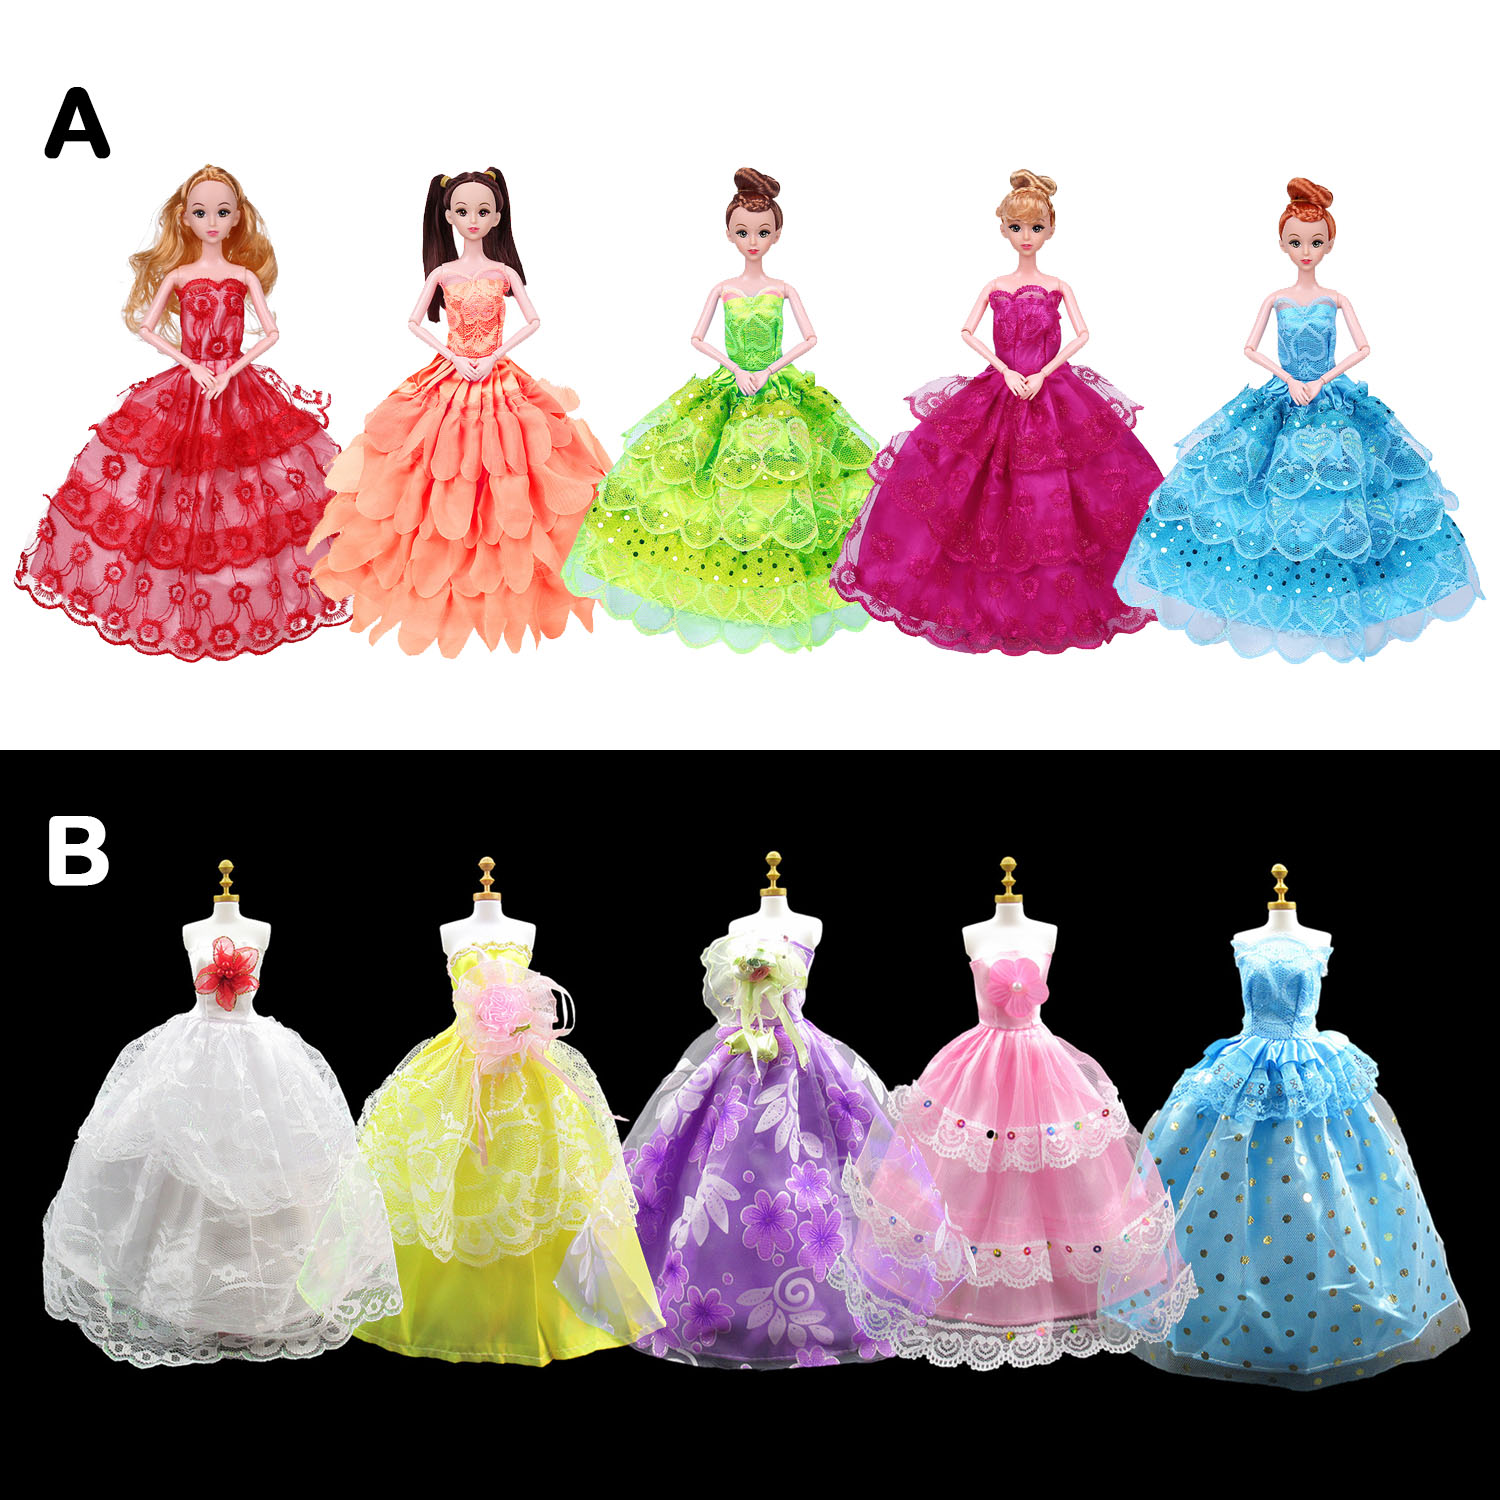 Besegad 5pcs Doll Clothes Fashion Elegant Wedding Party Dresses Gown Outfit Costume Accessories For Barbie 11.5 Inch Girl Doll